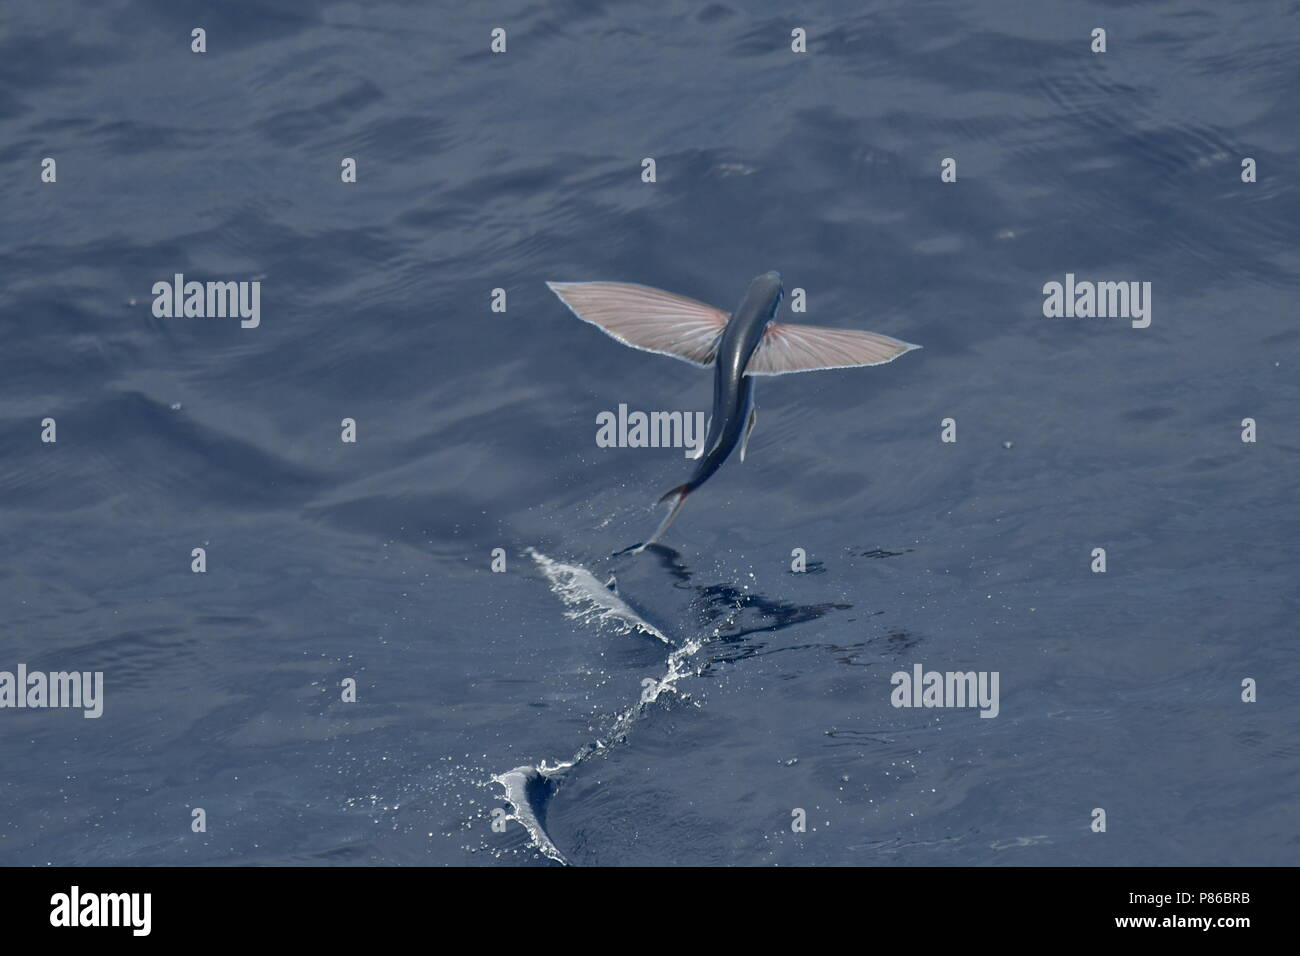 Flying fish species taking off from the ocean surface. Stock Photo